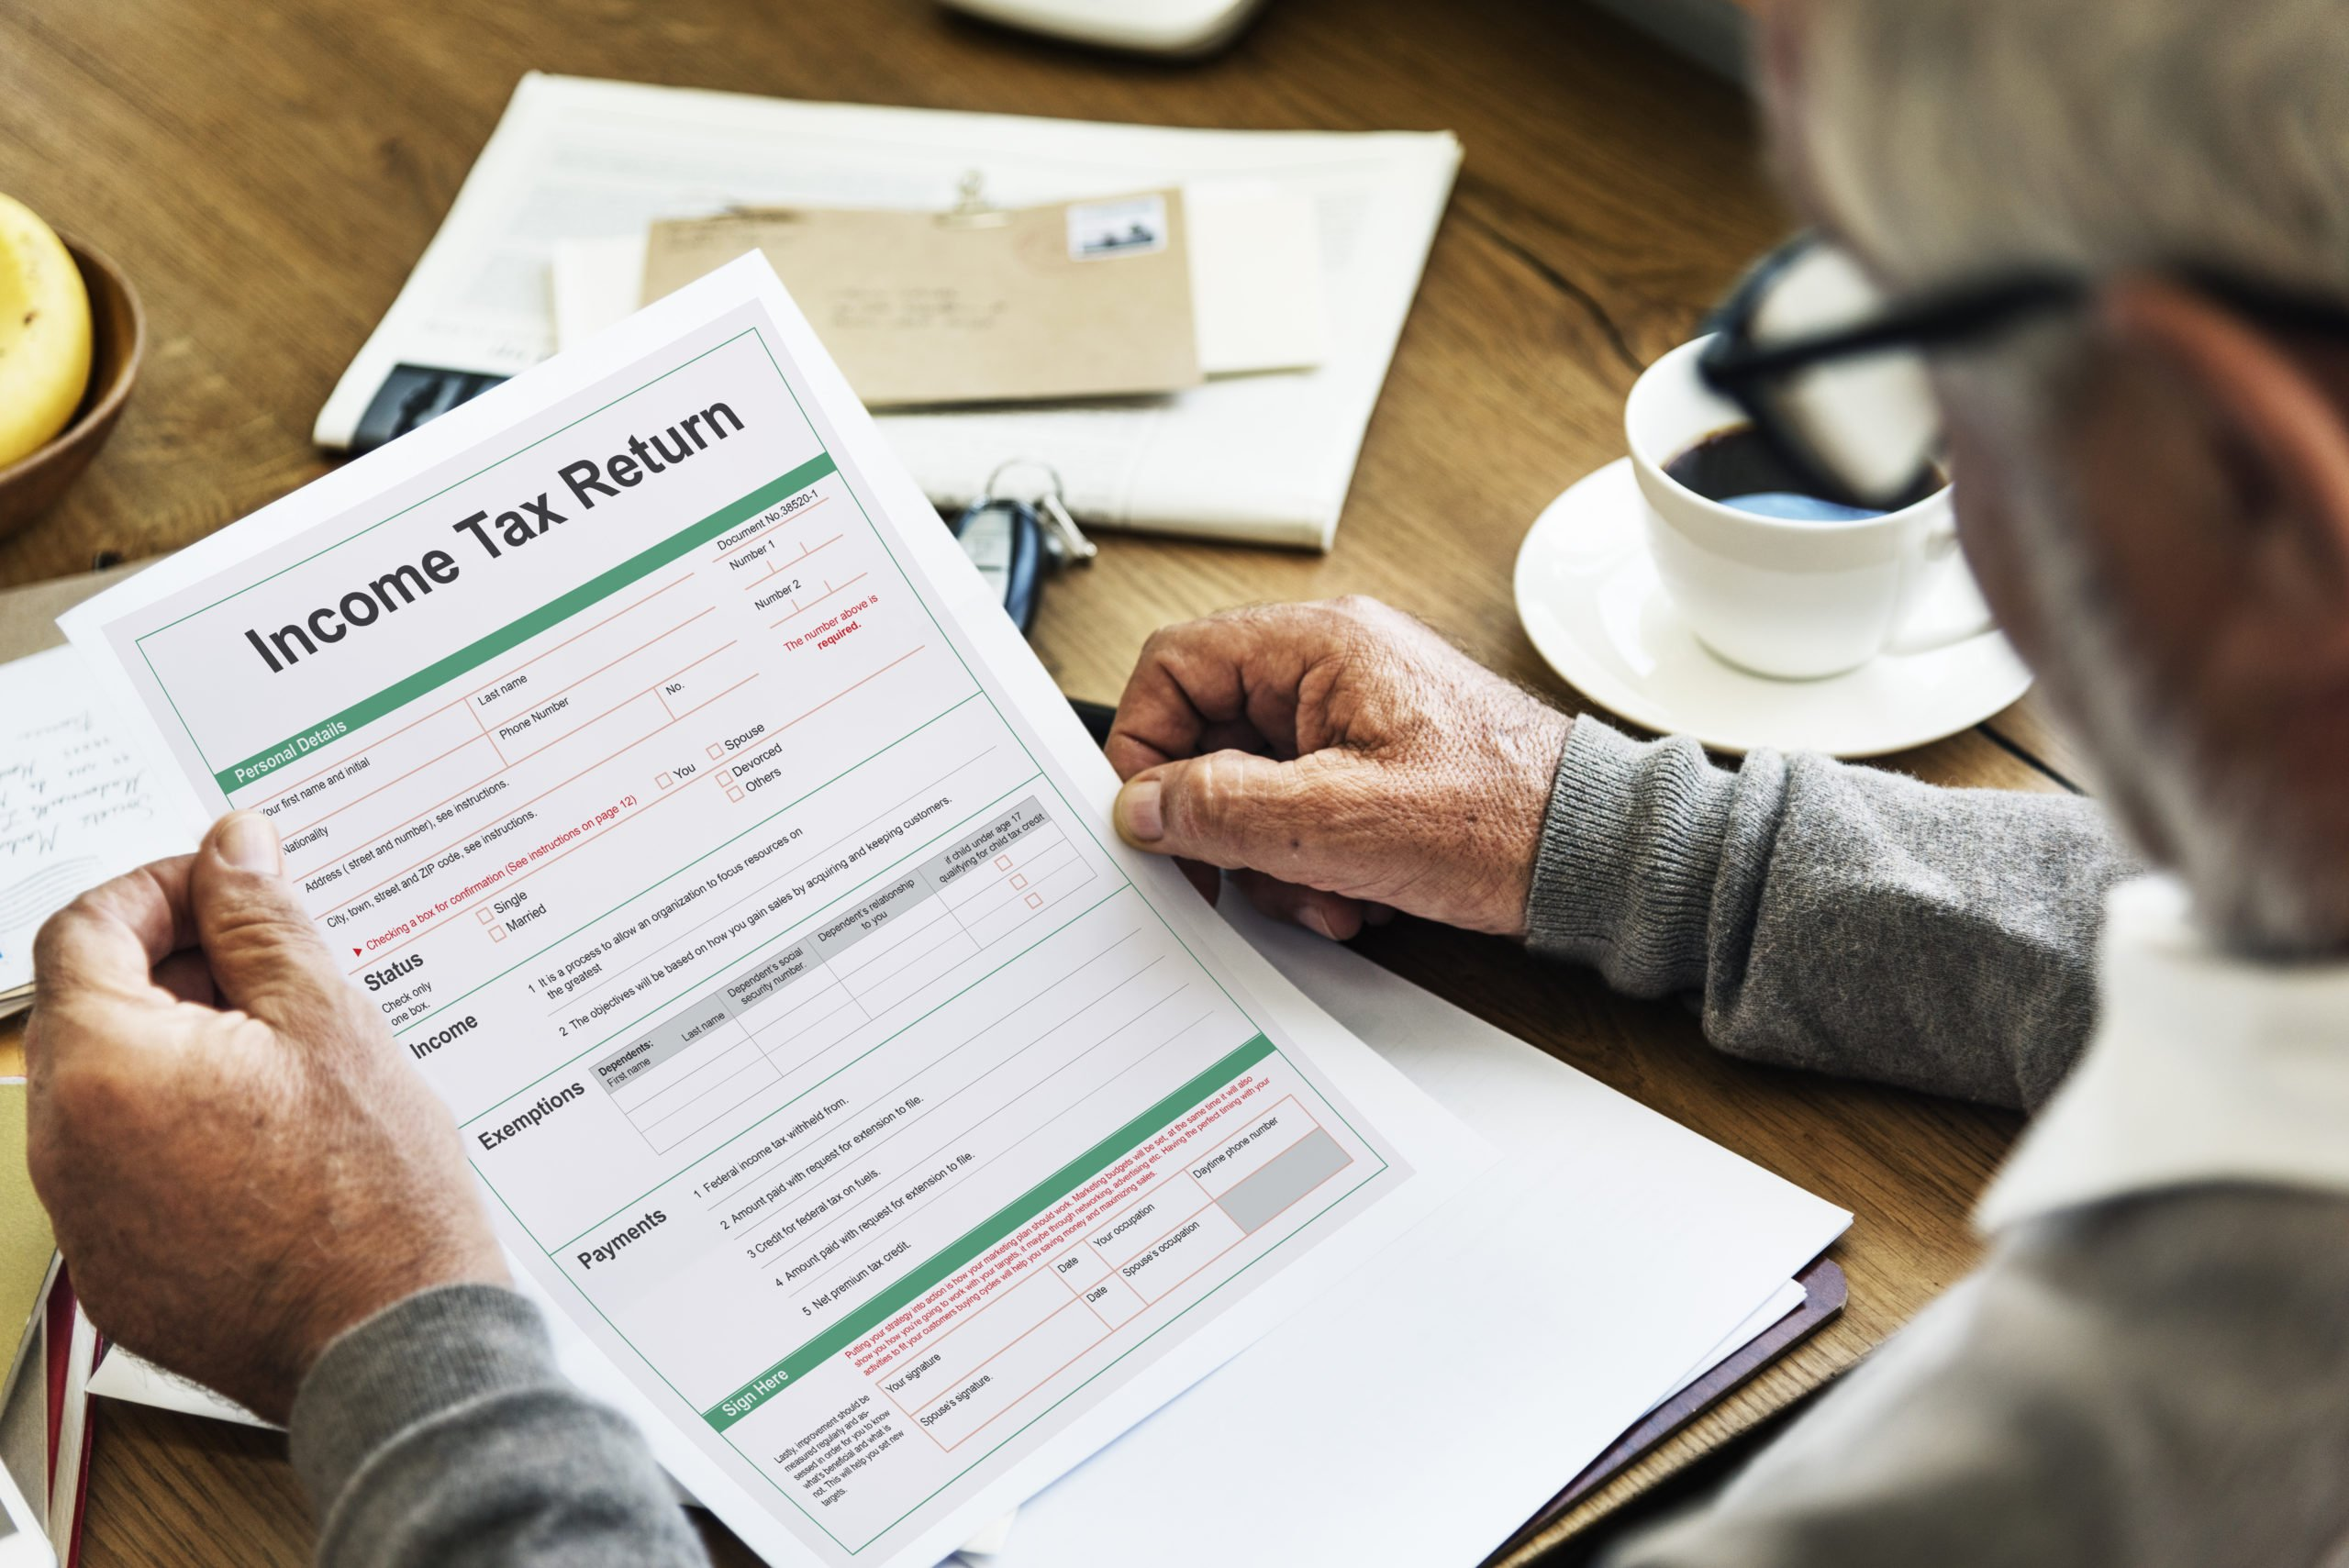 Deduct from Your Taxes - Pronto Taxx